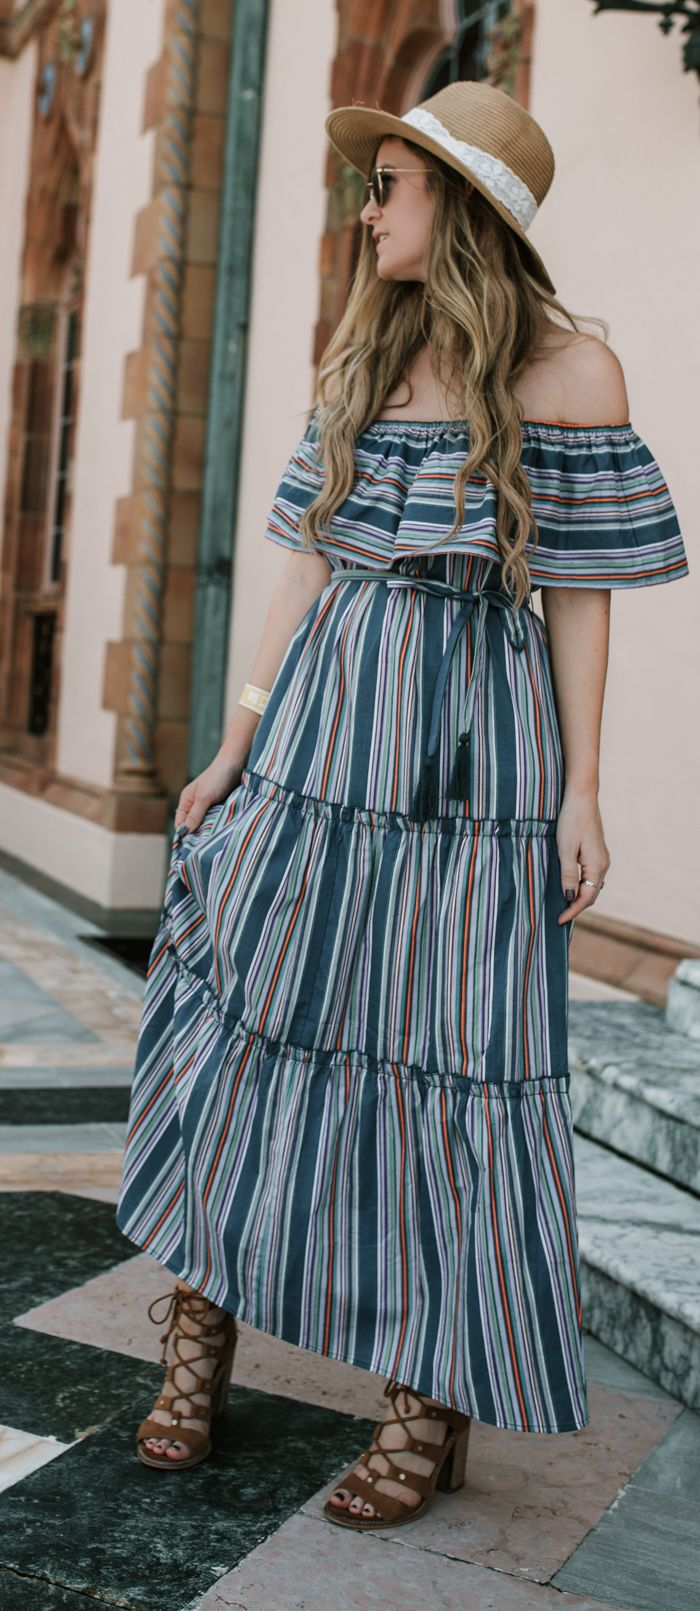 Cute vacation outfit styled with striped off the shoulder maxi dress, lace up block heel sandals, and straw hat